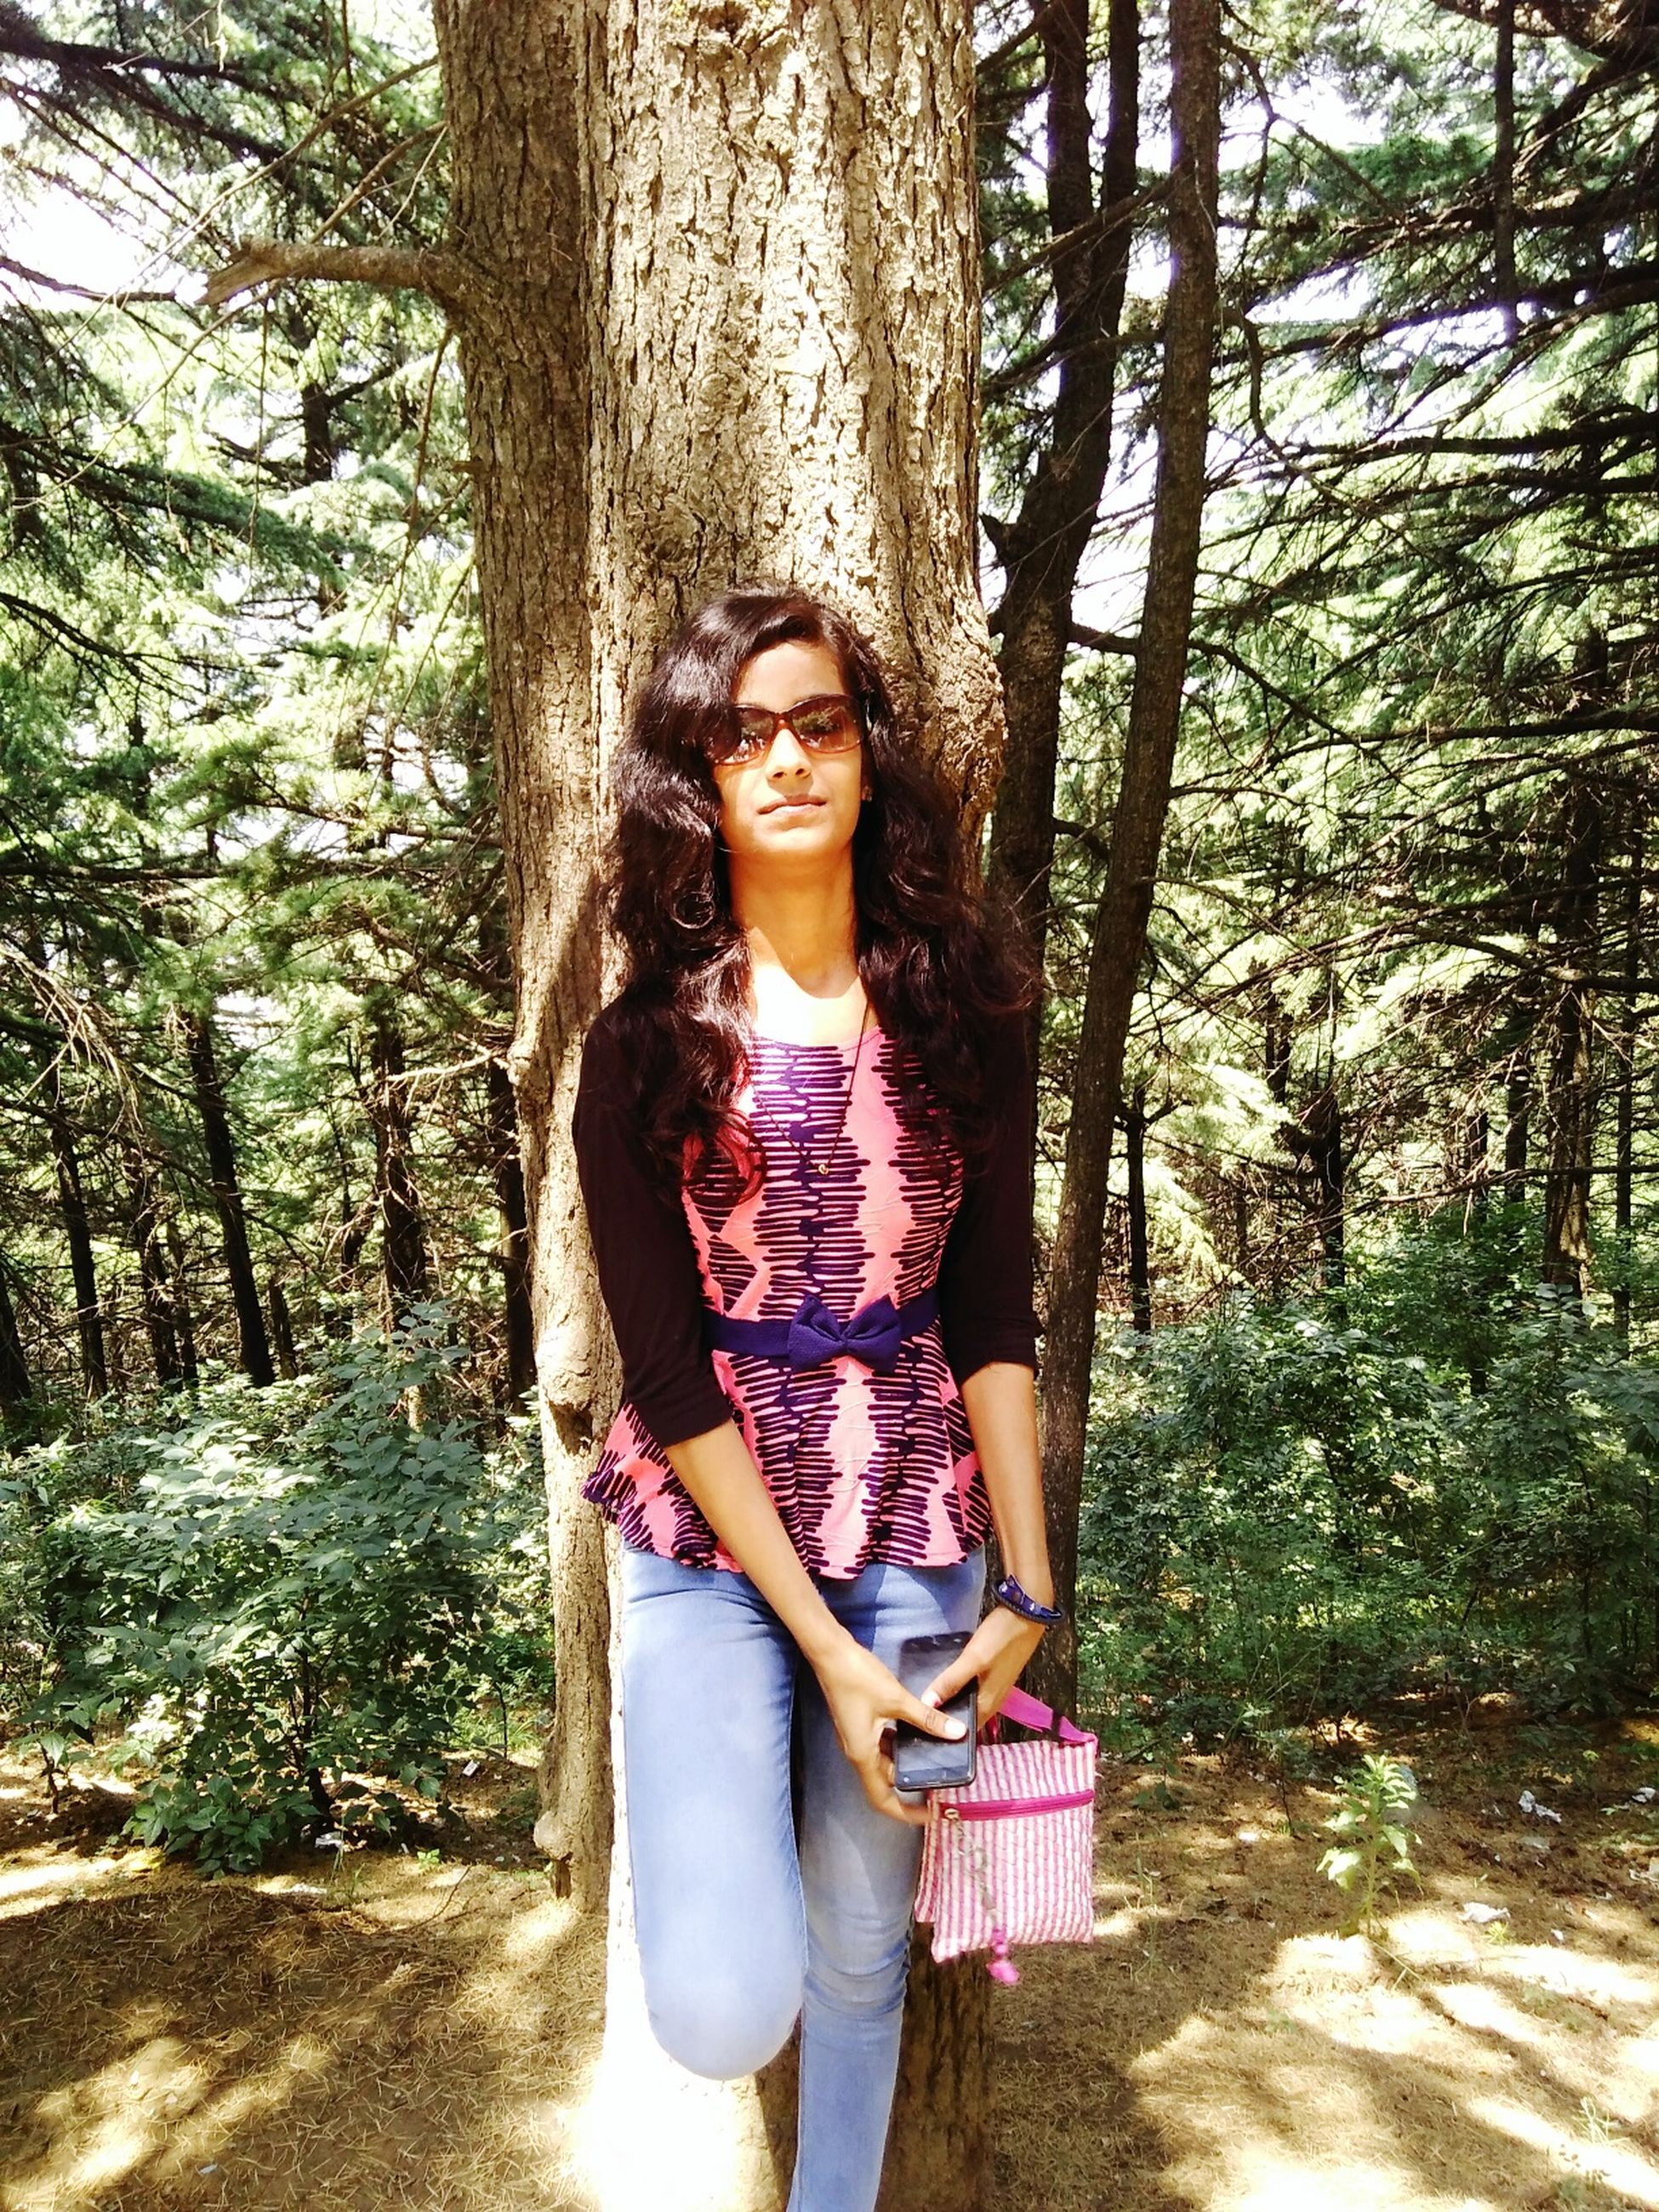 tree, tree trunk, lifestyles, forest, leisure activity, person, young adult, standing, young women, front view, full length, vacations, casual clothing, looking at camera, woodland, nature, day, non-urban scene, long hair, outdoors, tourism